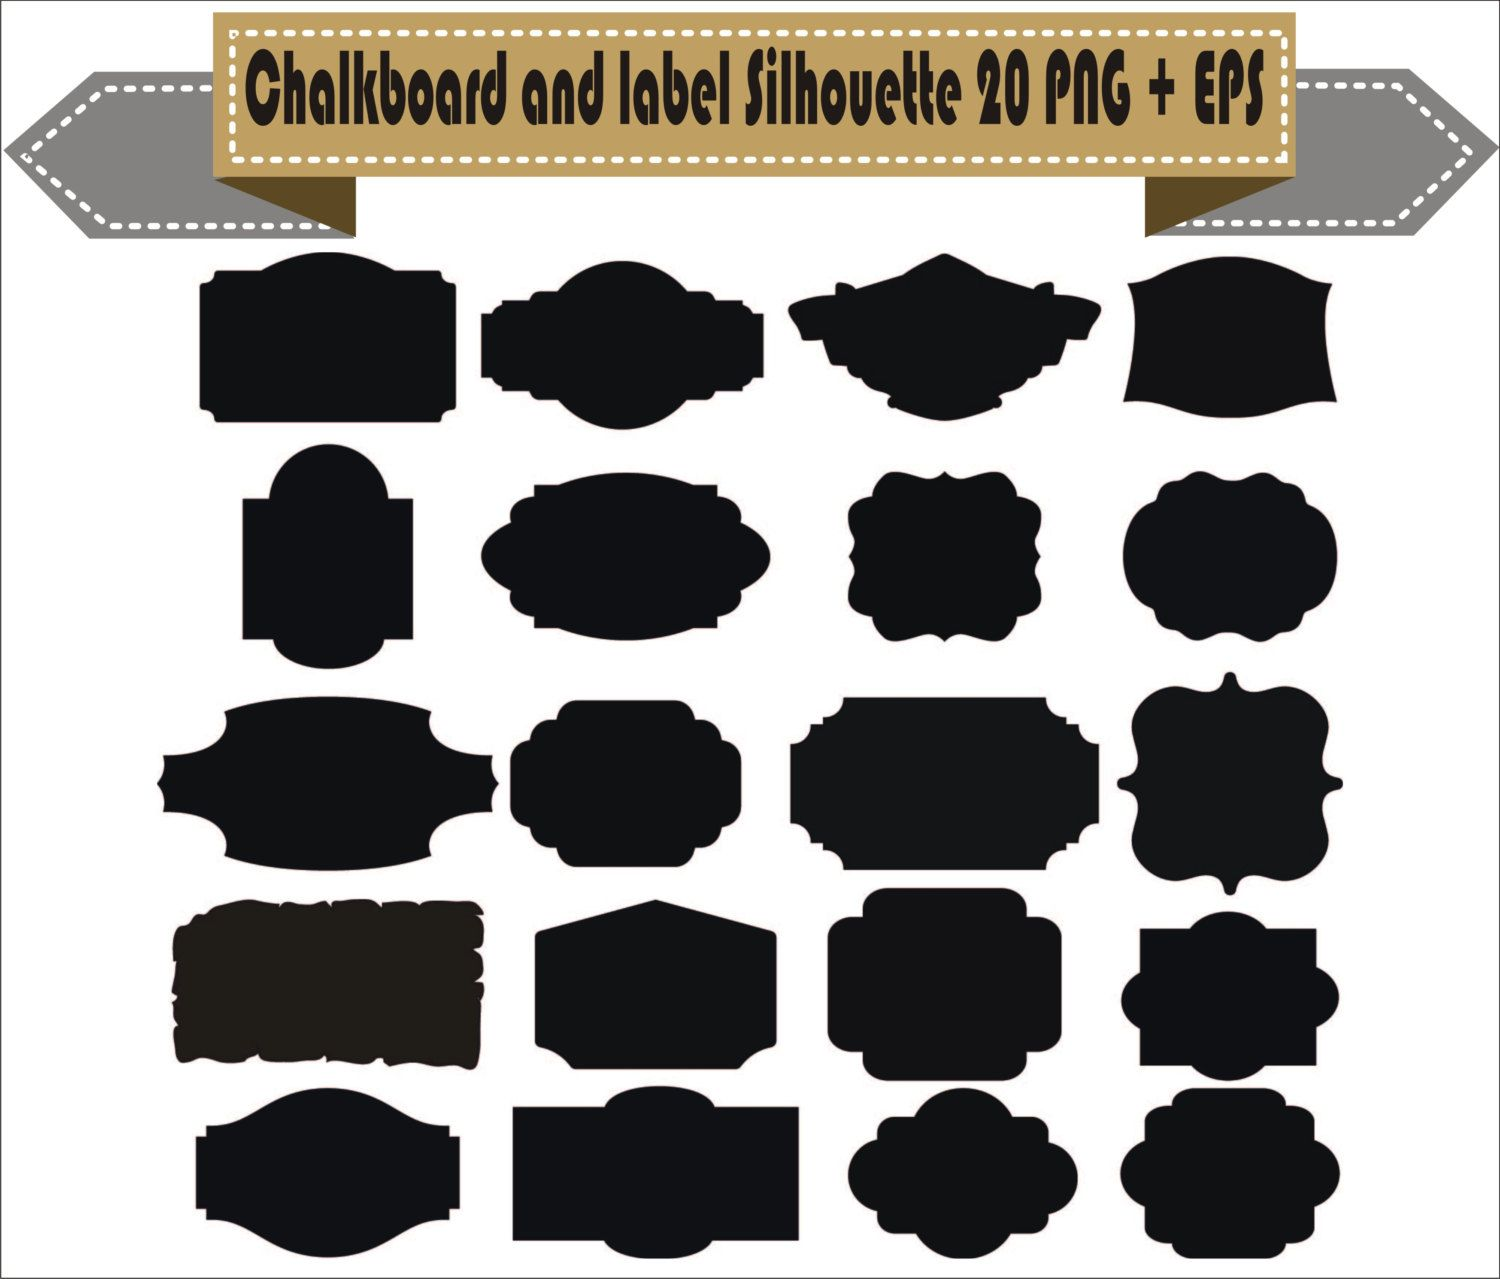 Chalkboard Frame Badges Vintage Motif Label Shapes Pack Silhouette